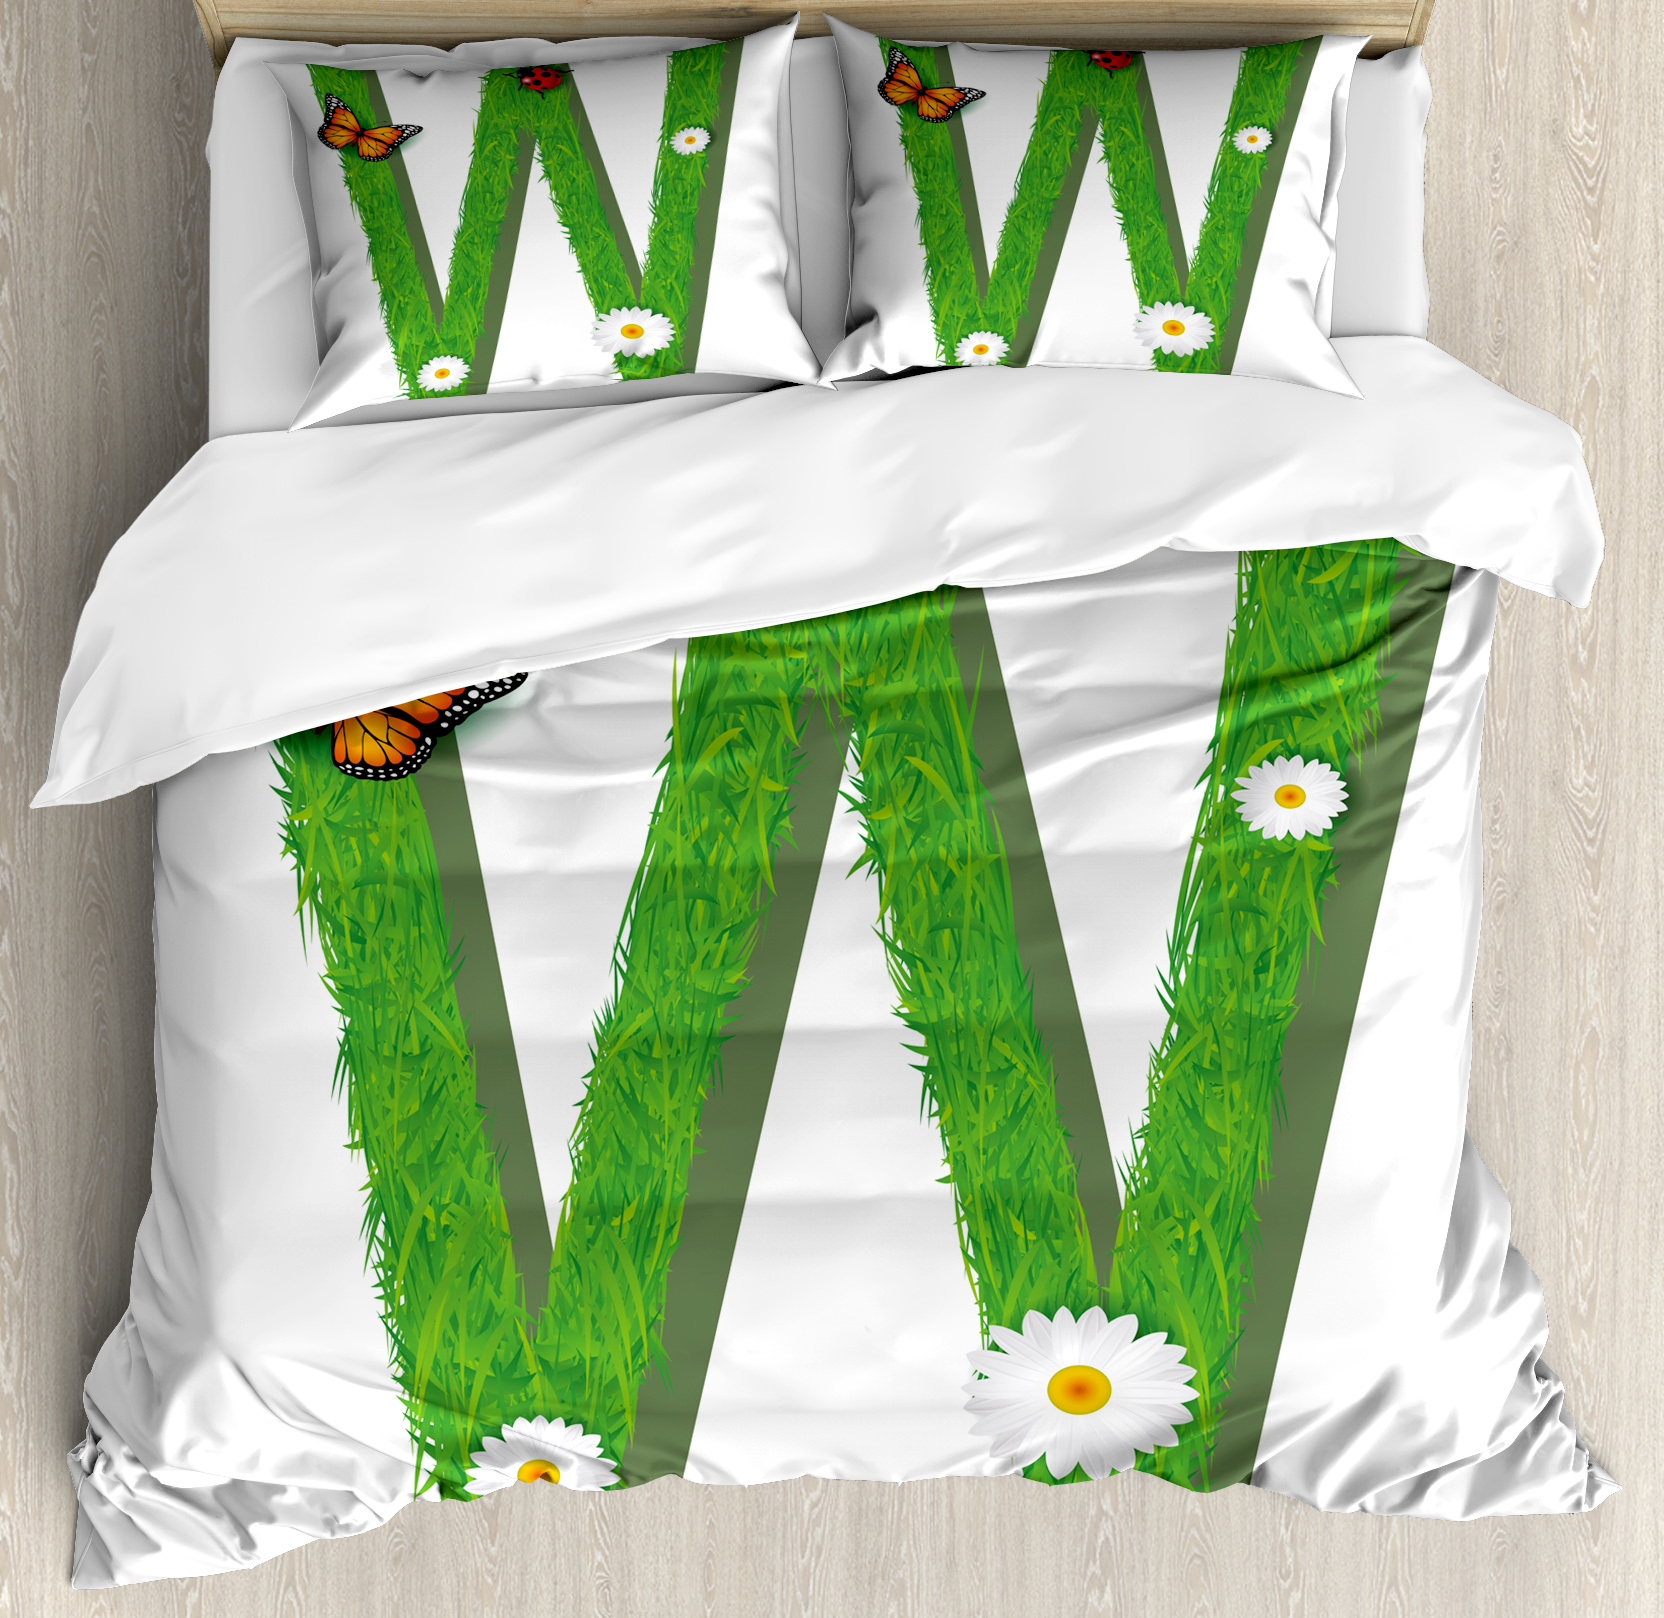 Letter W King Size Duvet Cover Set, Uppercase W Nature Influences Butterfly Freedom Inspirations of Summer Kids, Decorative 3 Piece Bedding Set with 2 Pillow Shams, Green Multicolor, by Ambesonne